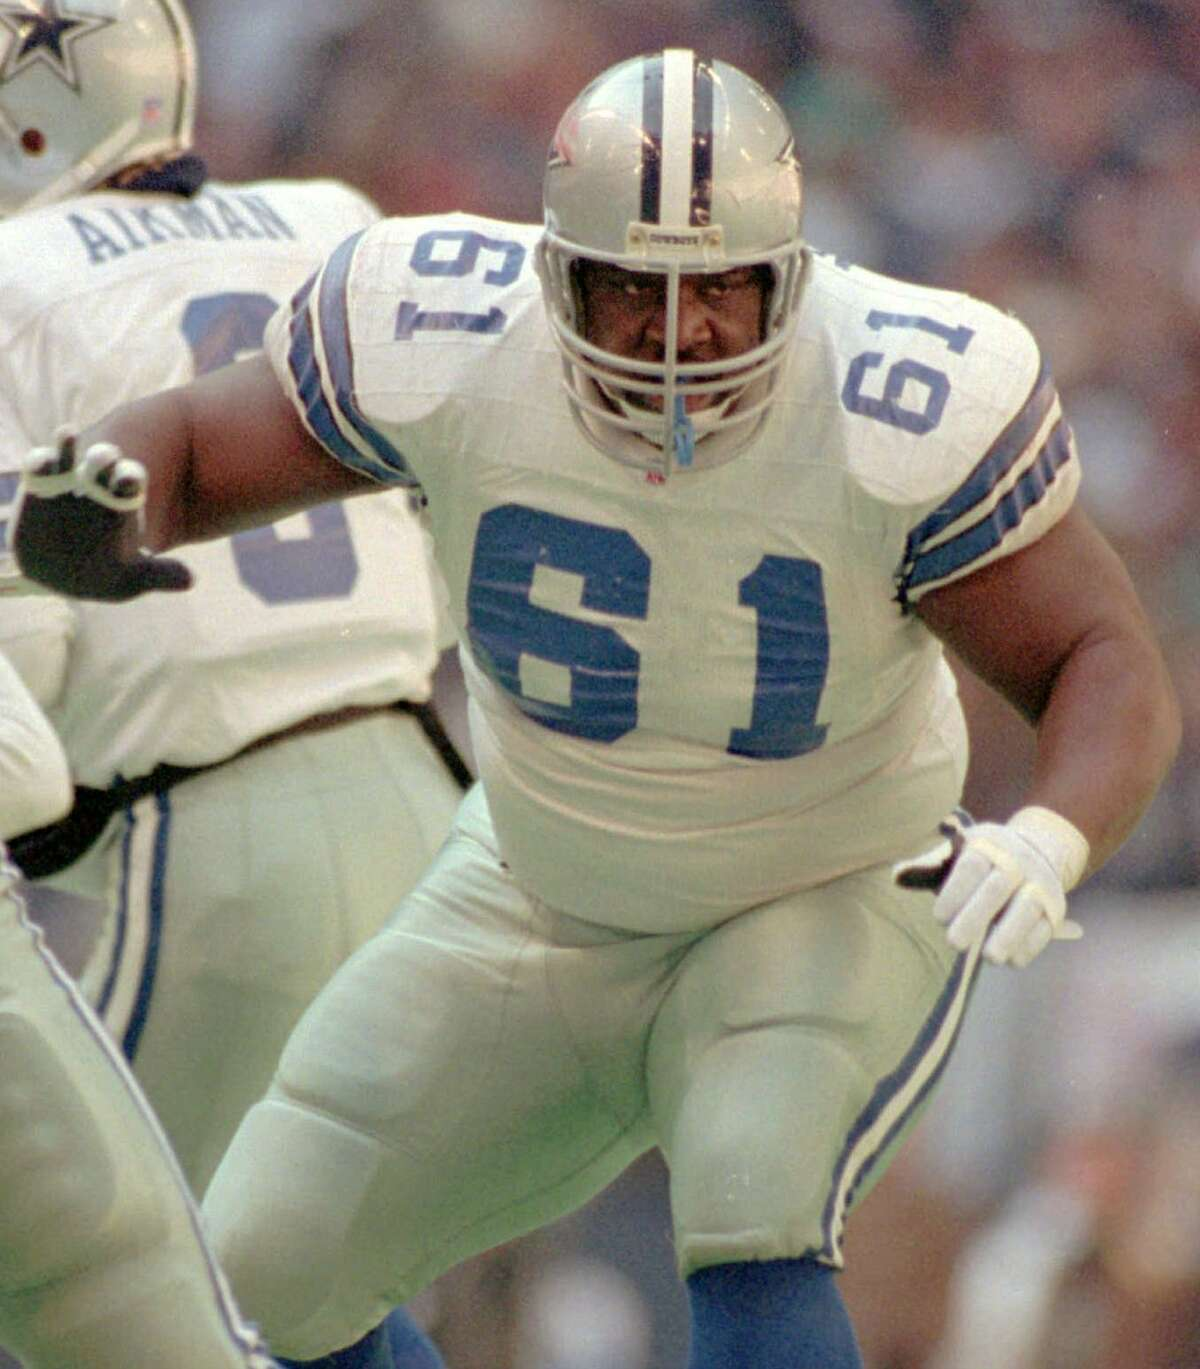 Former offensive lineman Nate Newton was sentenced to two years and six months in federal prison for drug trafficking in 2002.